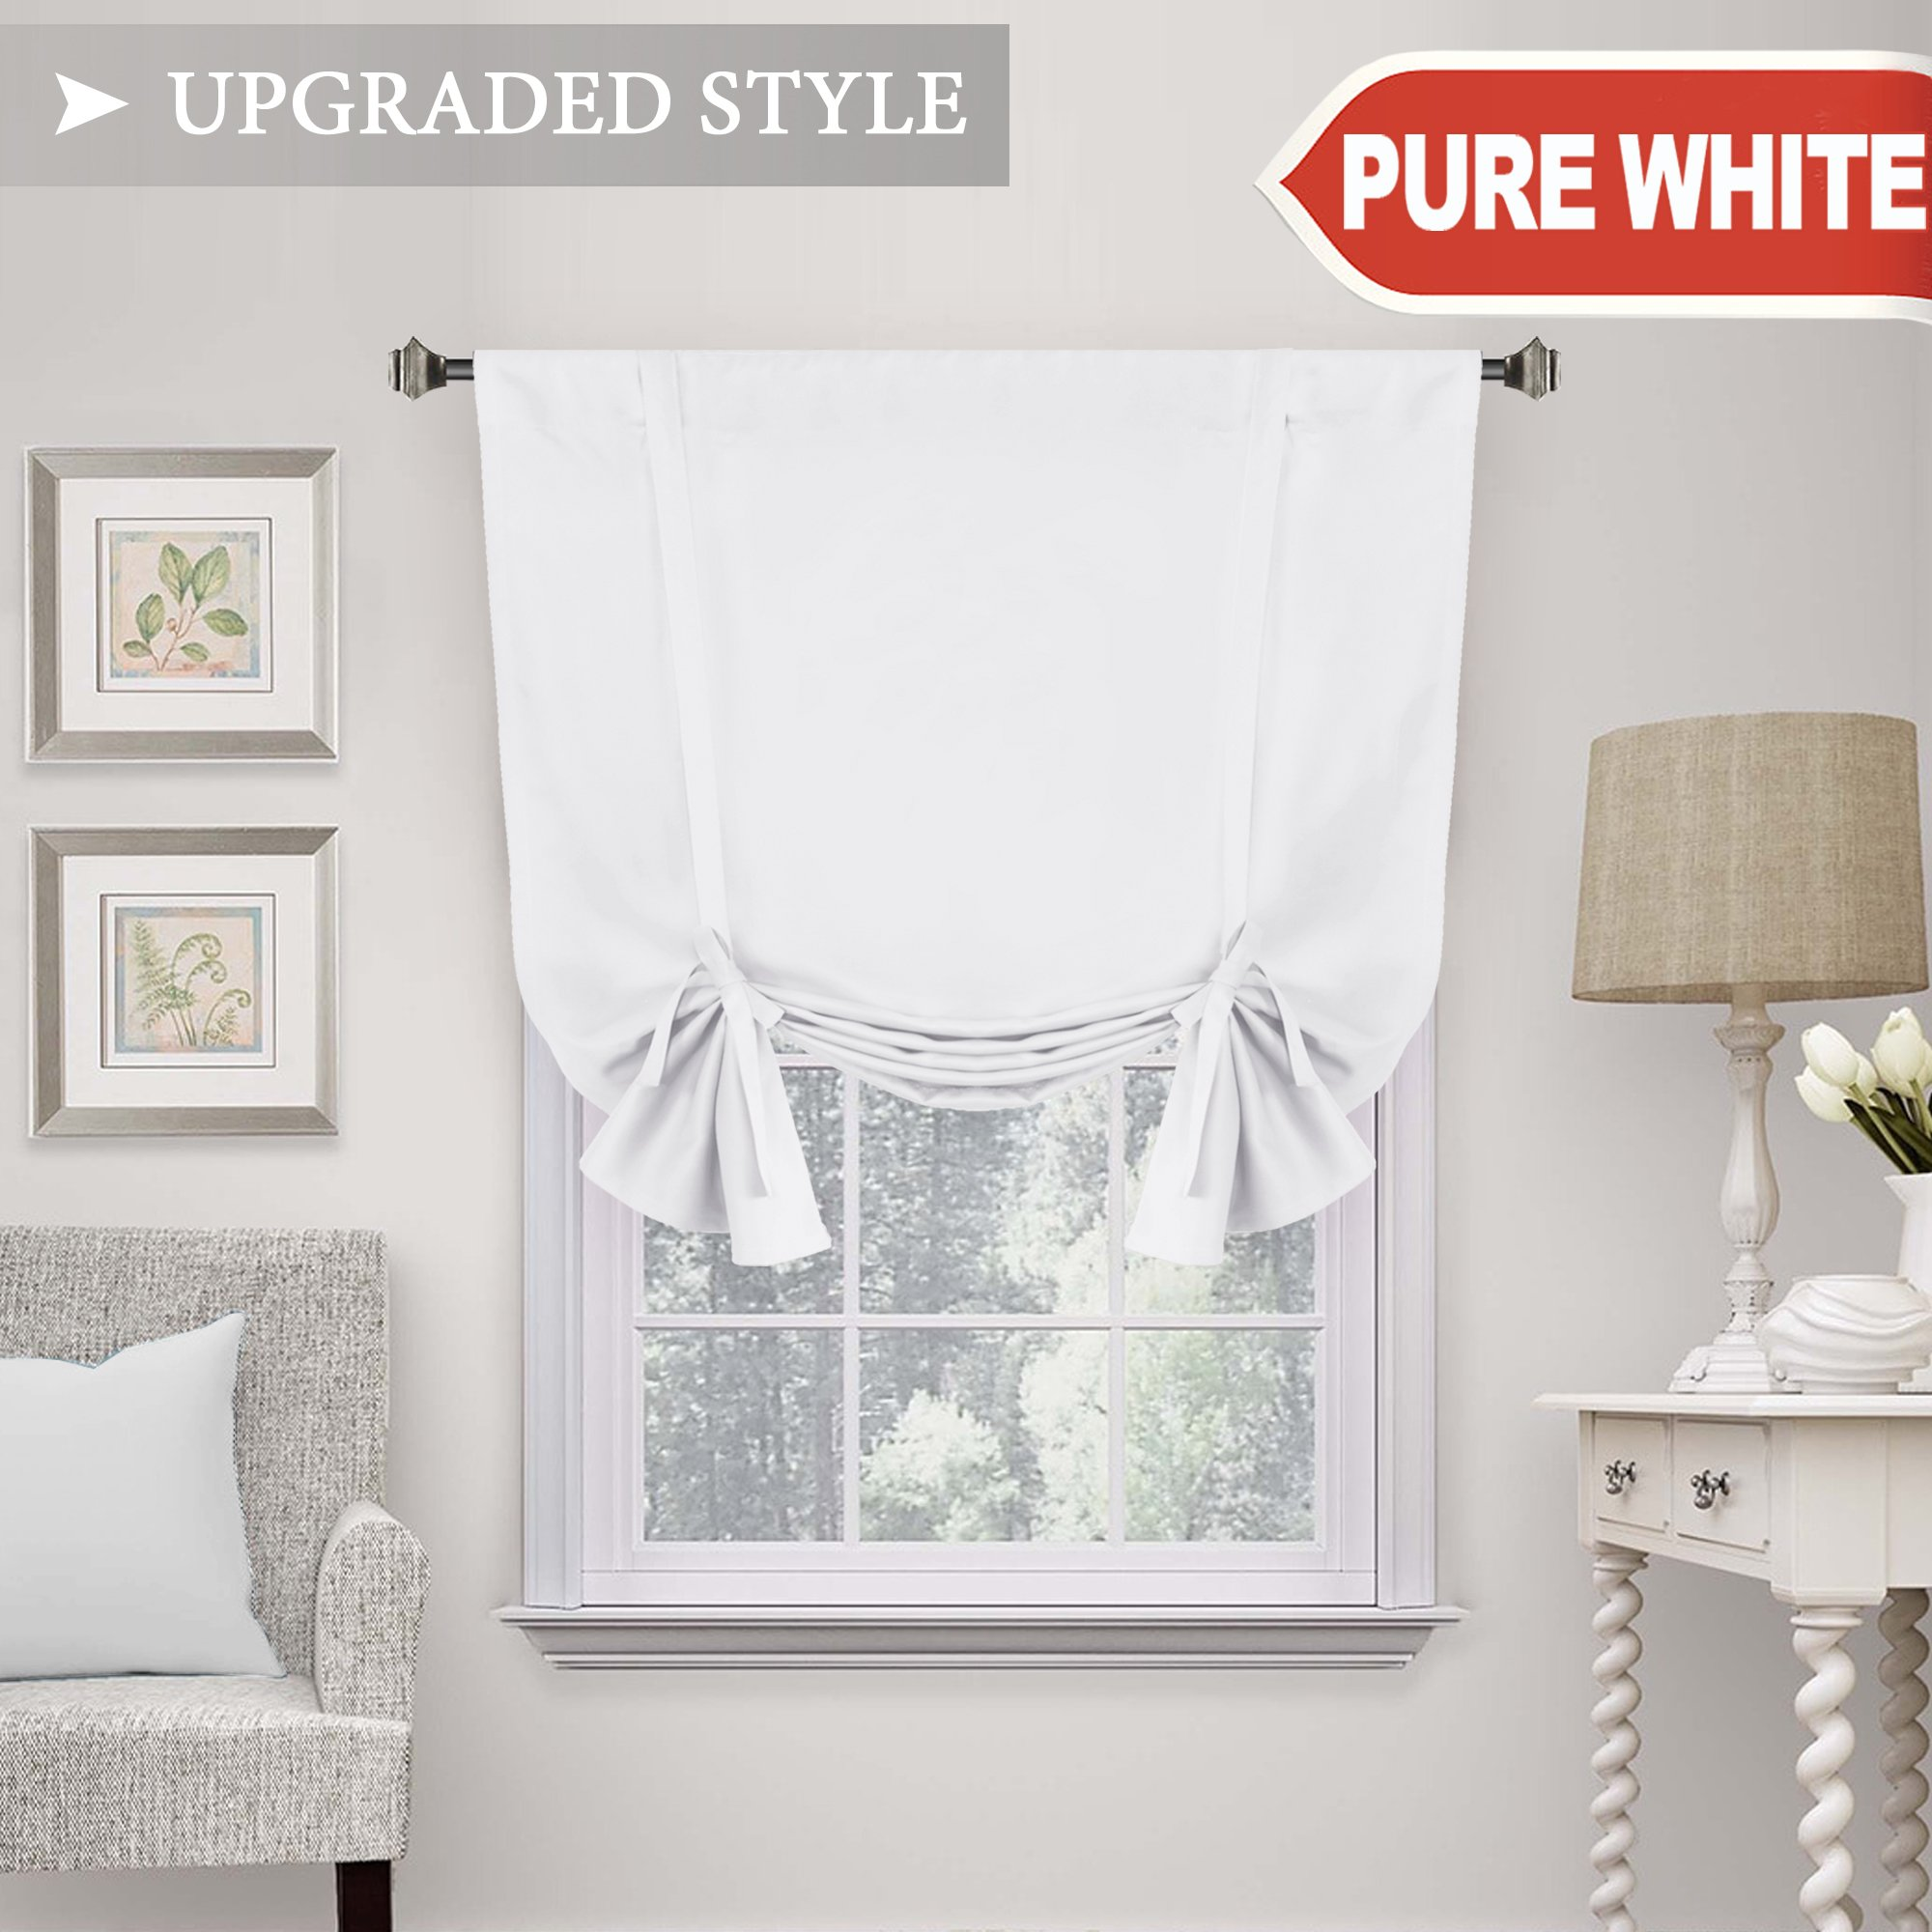 H.VERSAILTEX Pure White Curtain Thermal Insulated Tie Up Window Shade Light Blocking Curtains for Bathroom, Rod Pocket Panel- 42'' Wide by 63'' Long